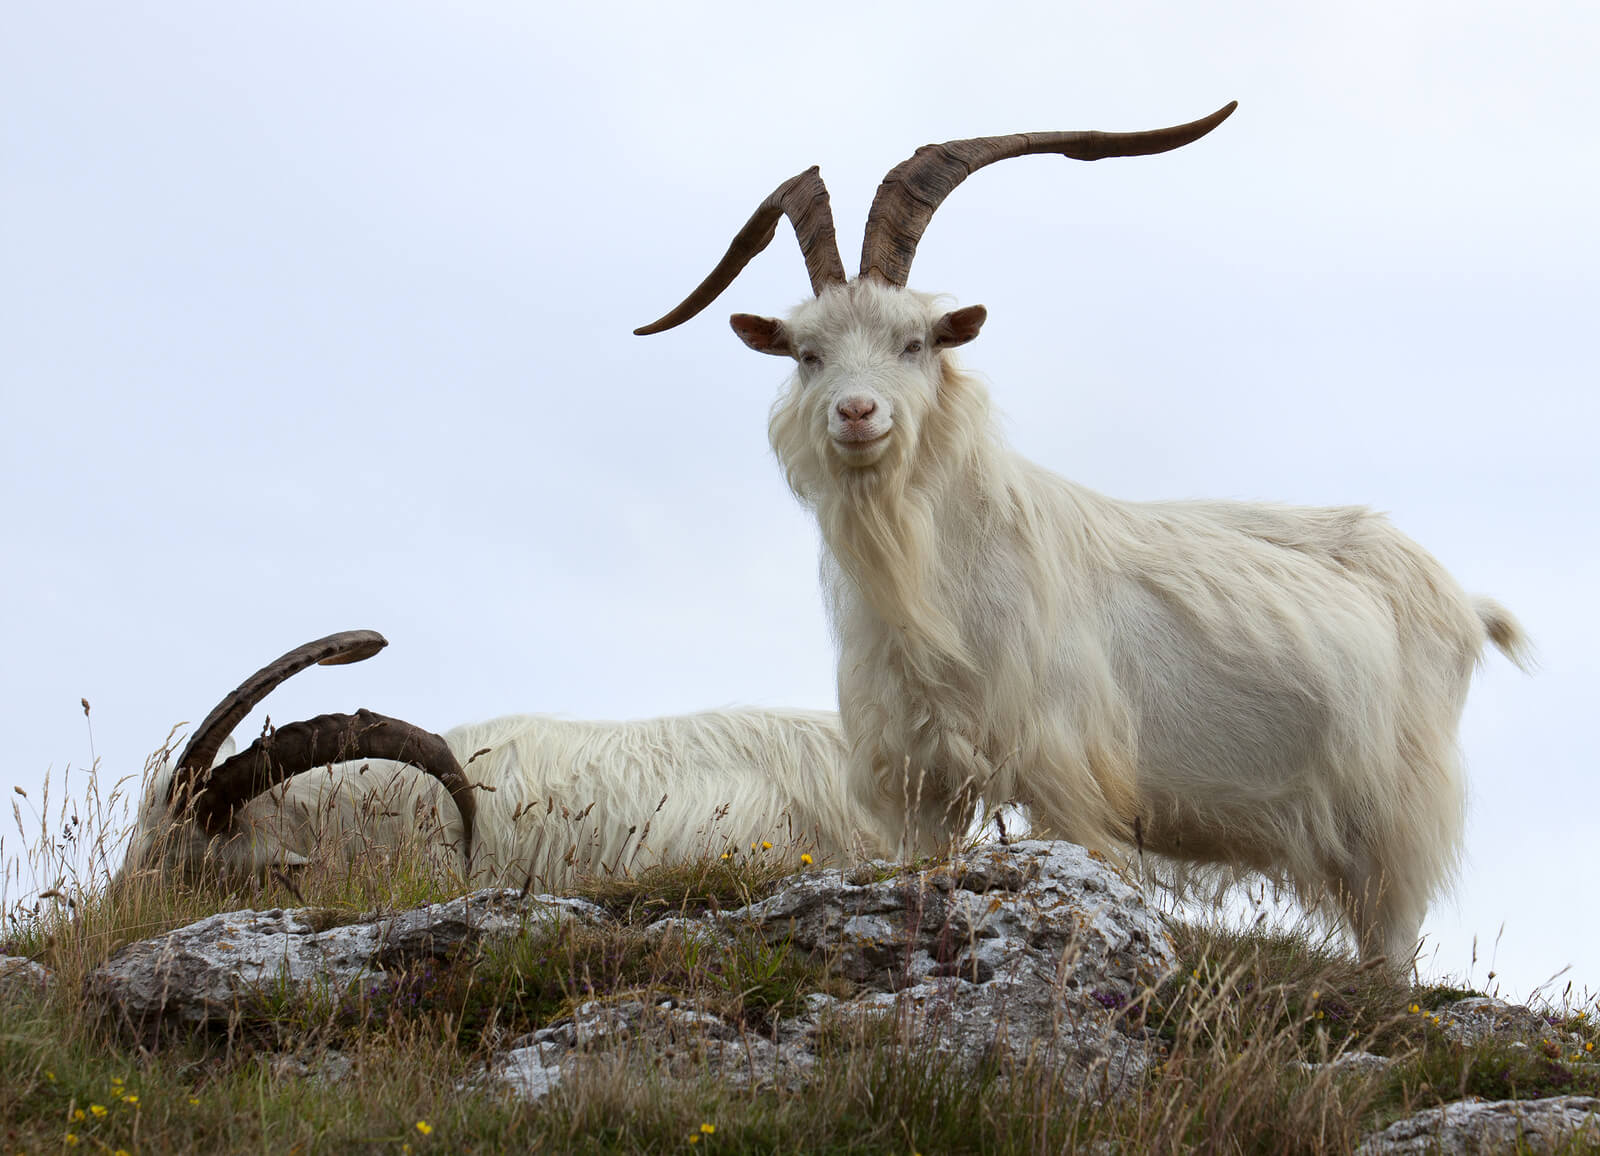 Cashmere goats in Wales, UK